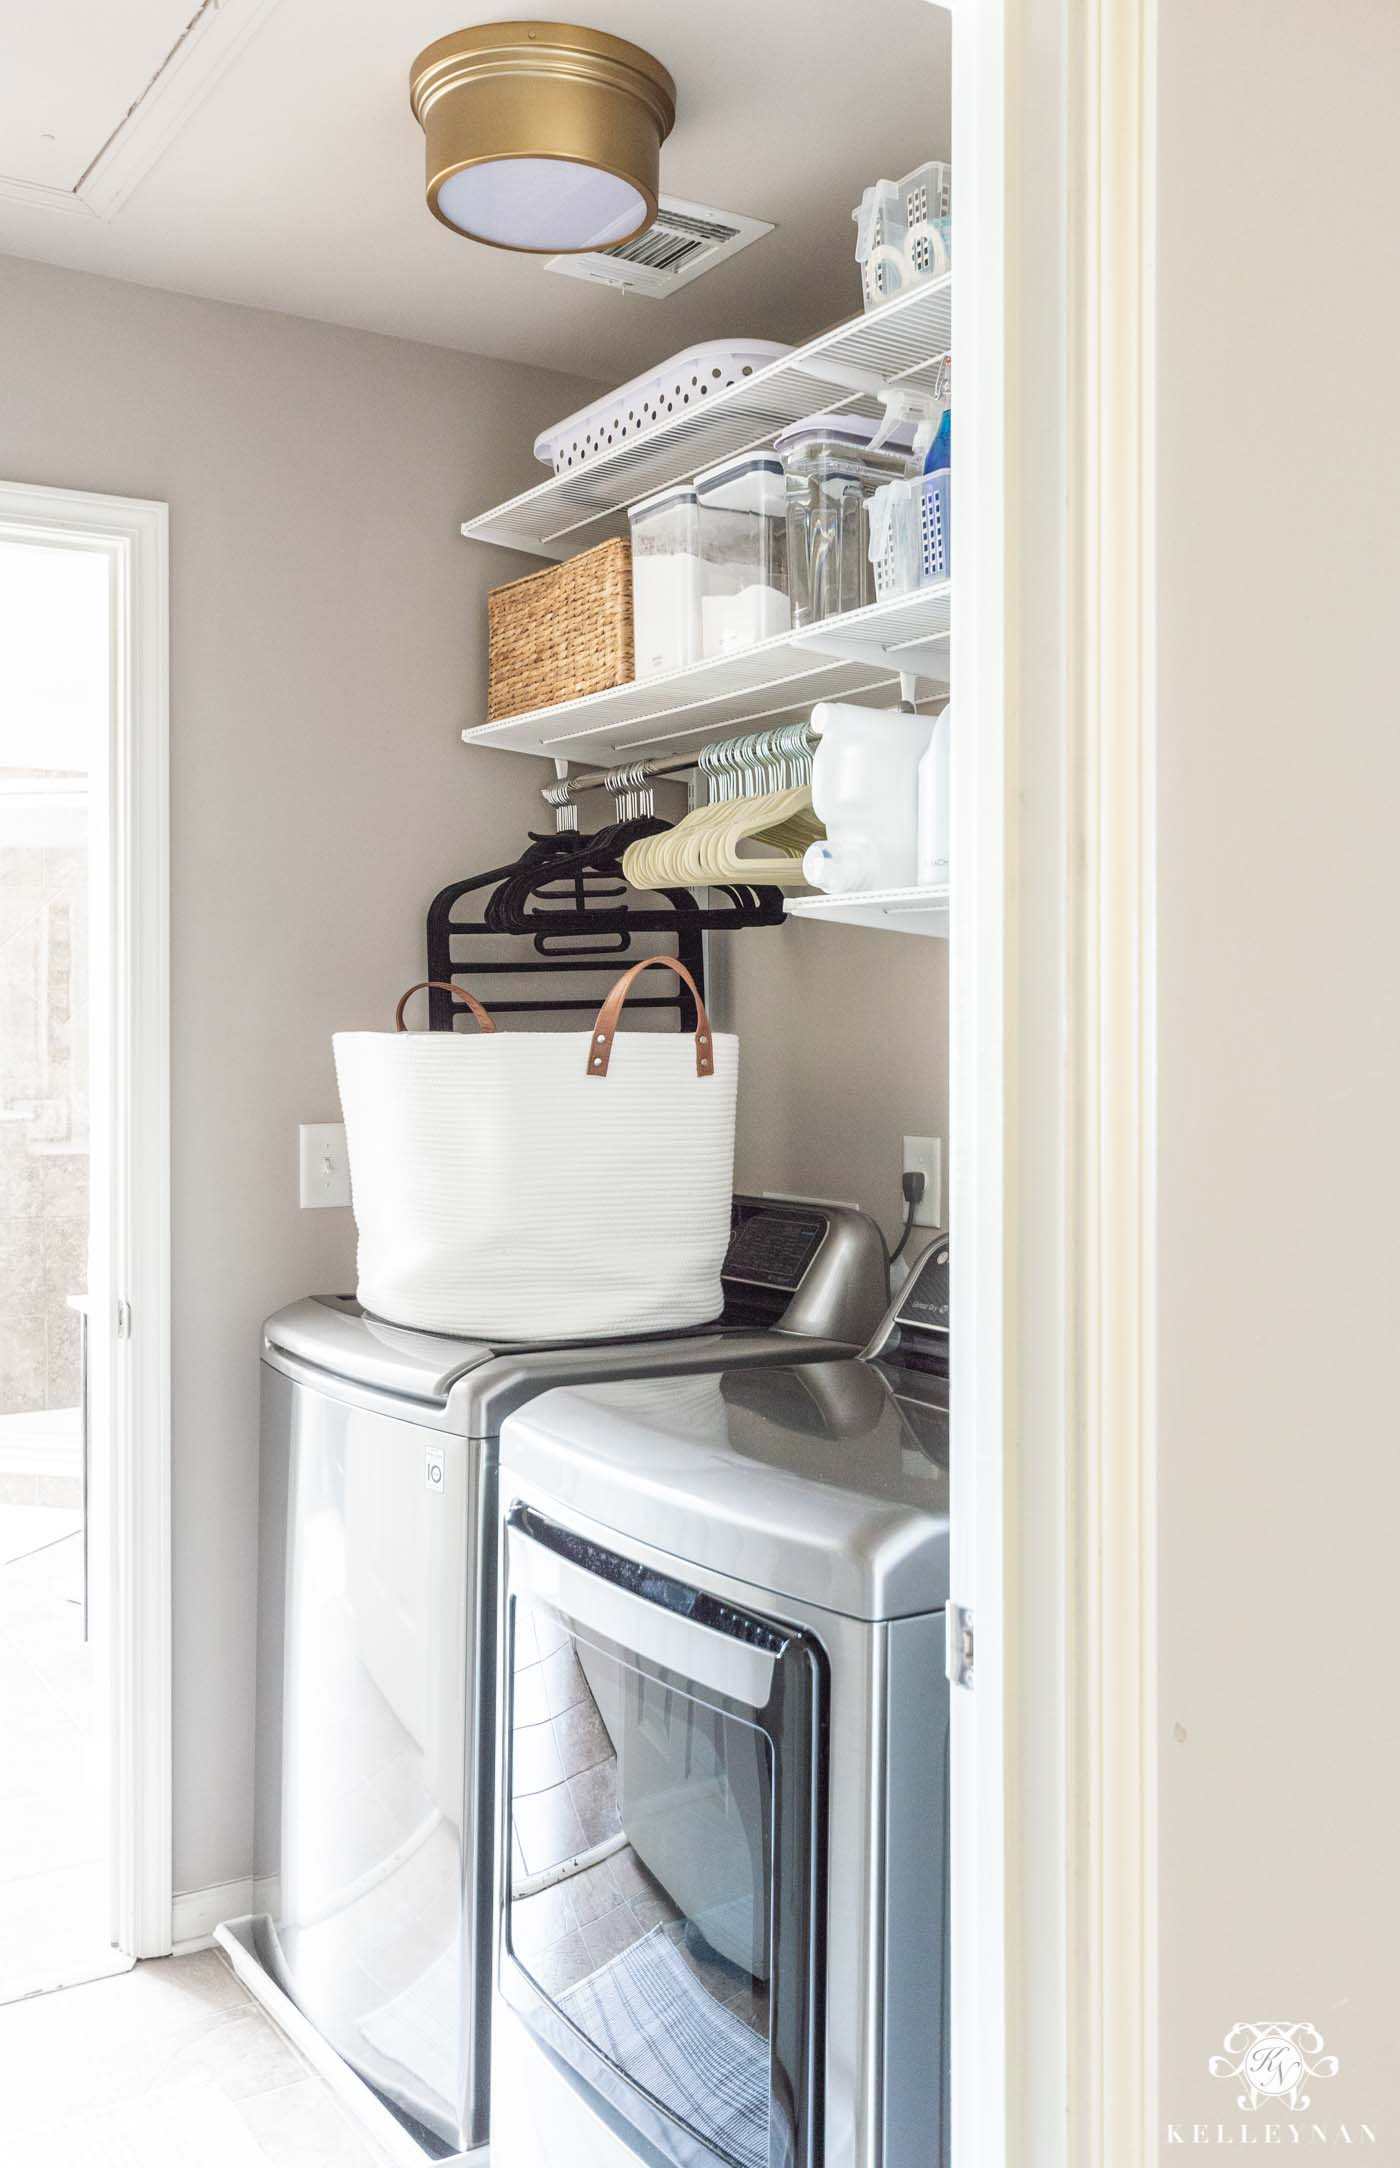 Small Laundry Room Organization Ideas and how to Maximize Storage in a Pass-Through